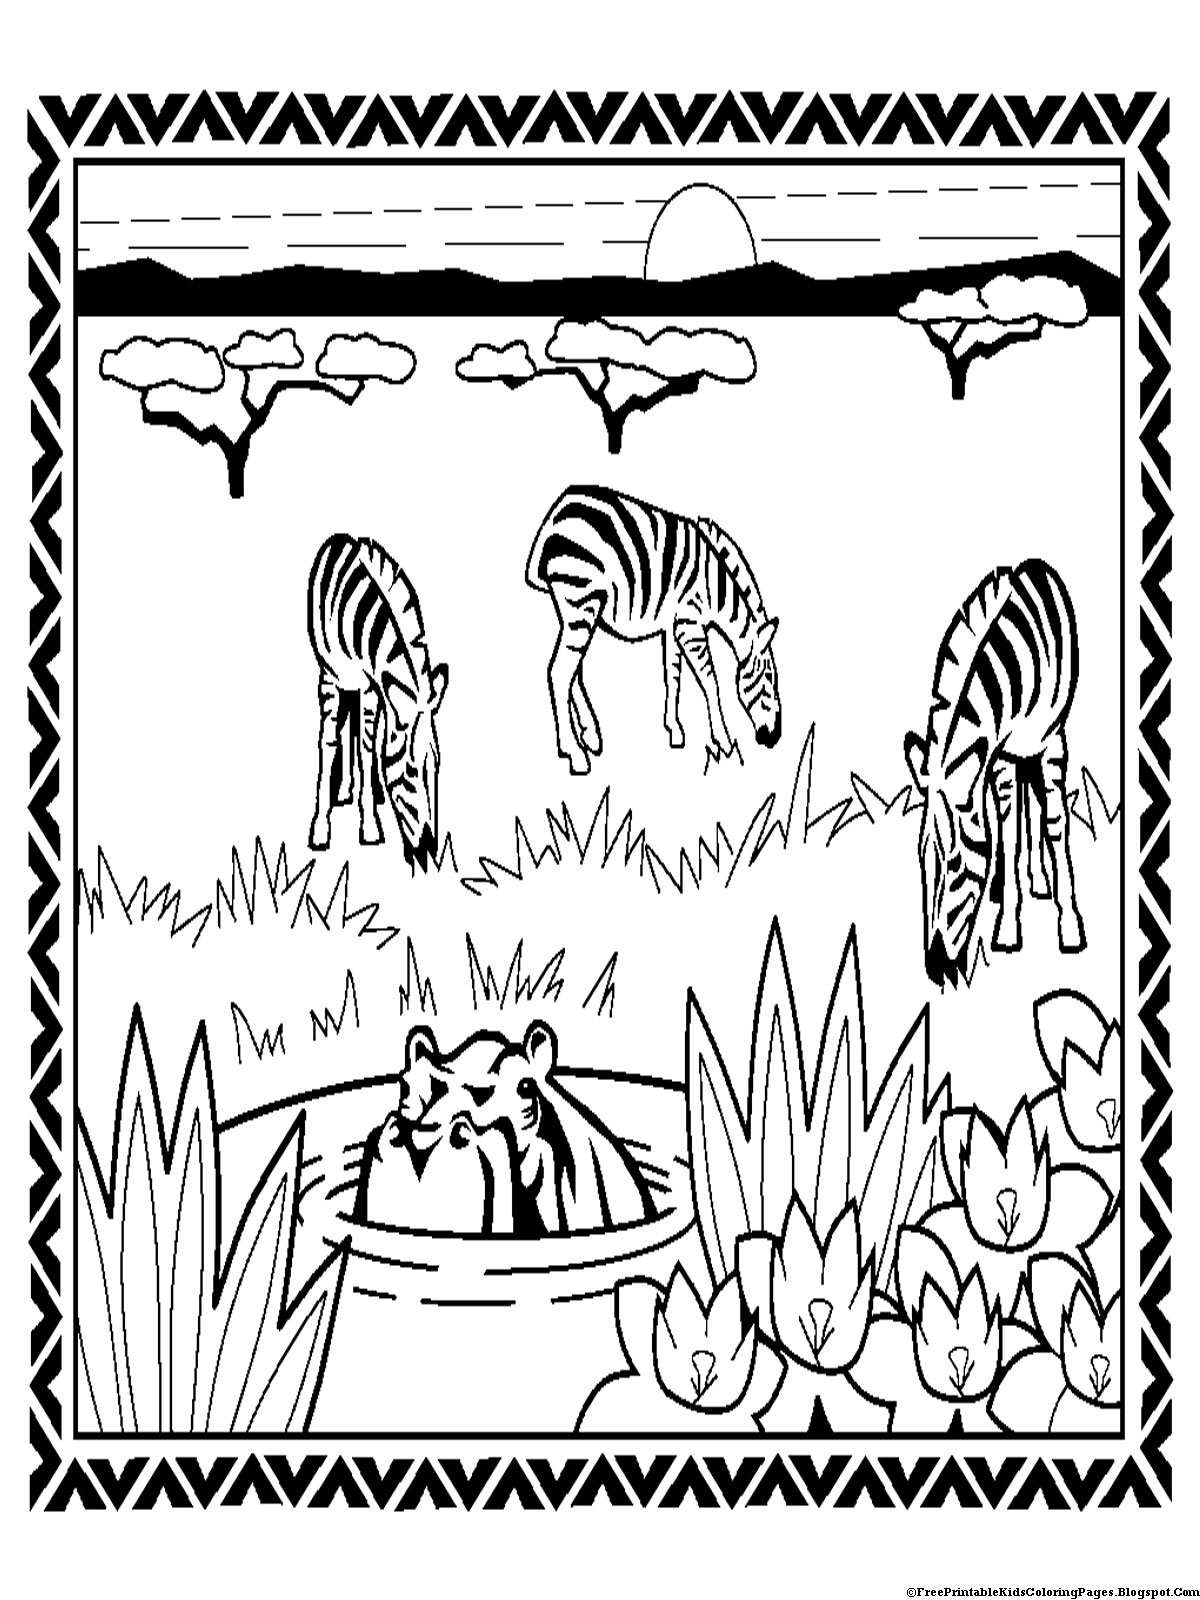 free zebra coloring pages to print zebra coloring pages download and print zebra coloring pages coloring pages to zebra print free